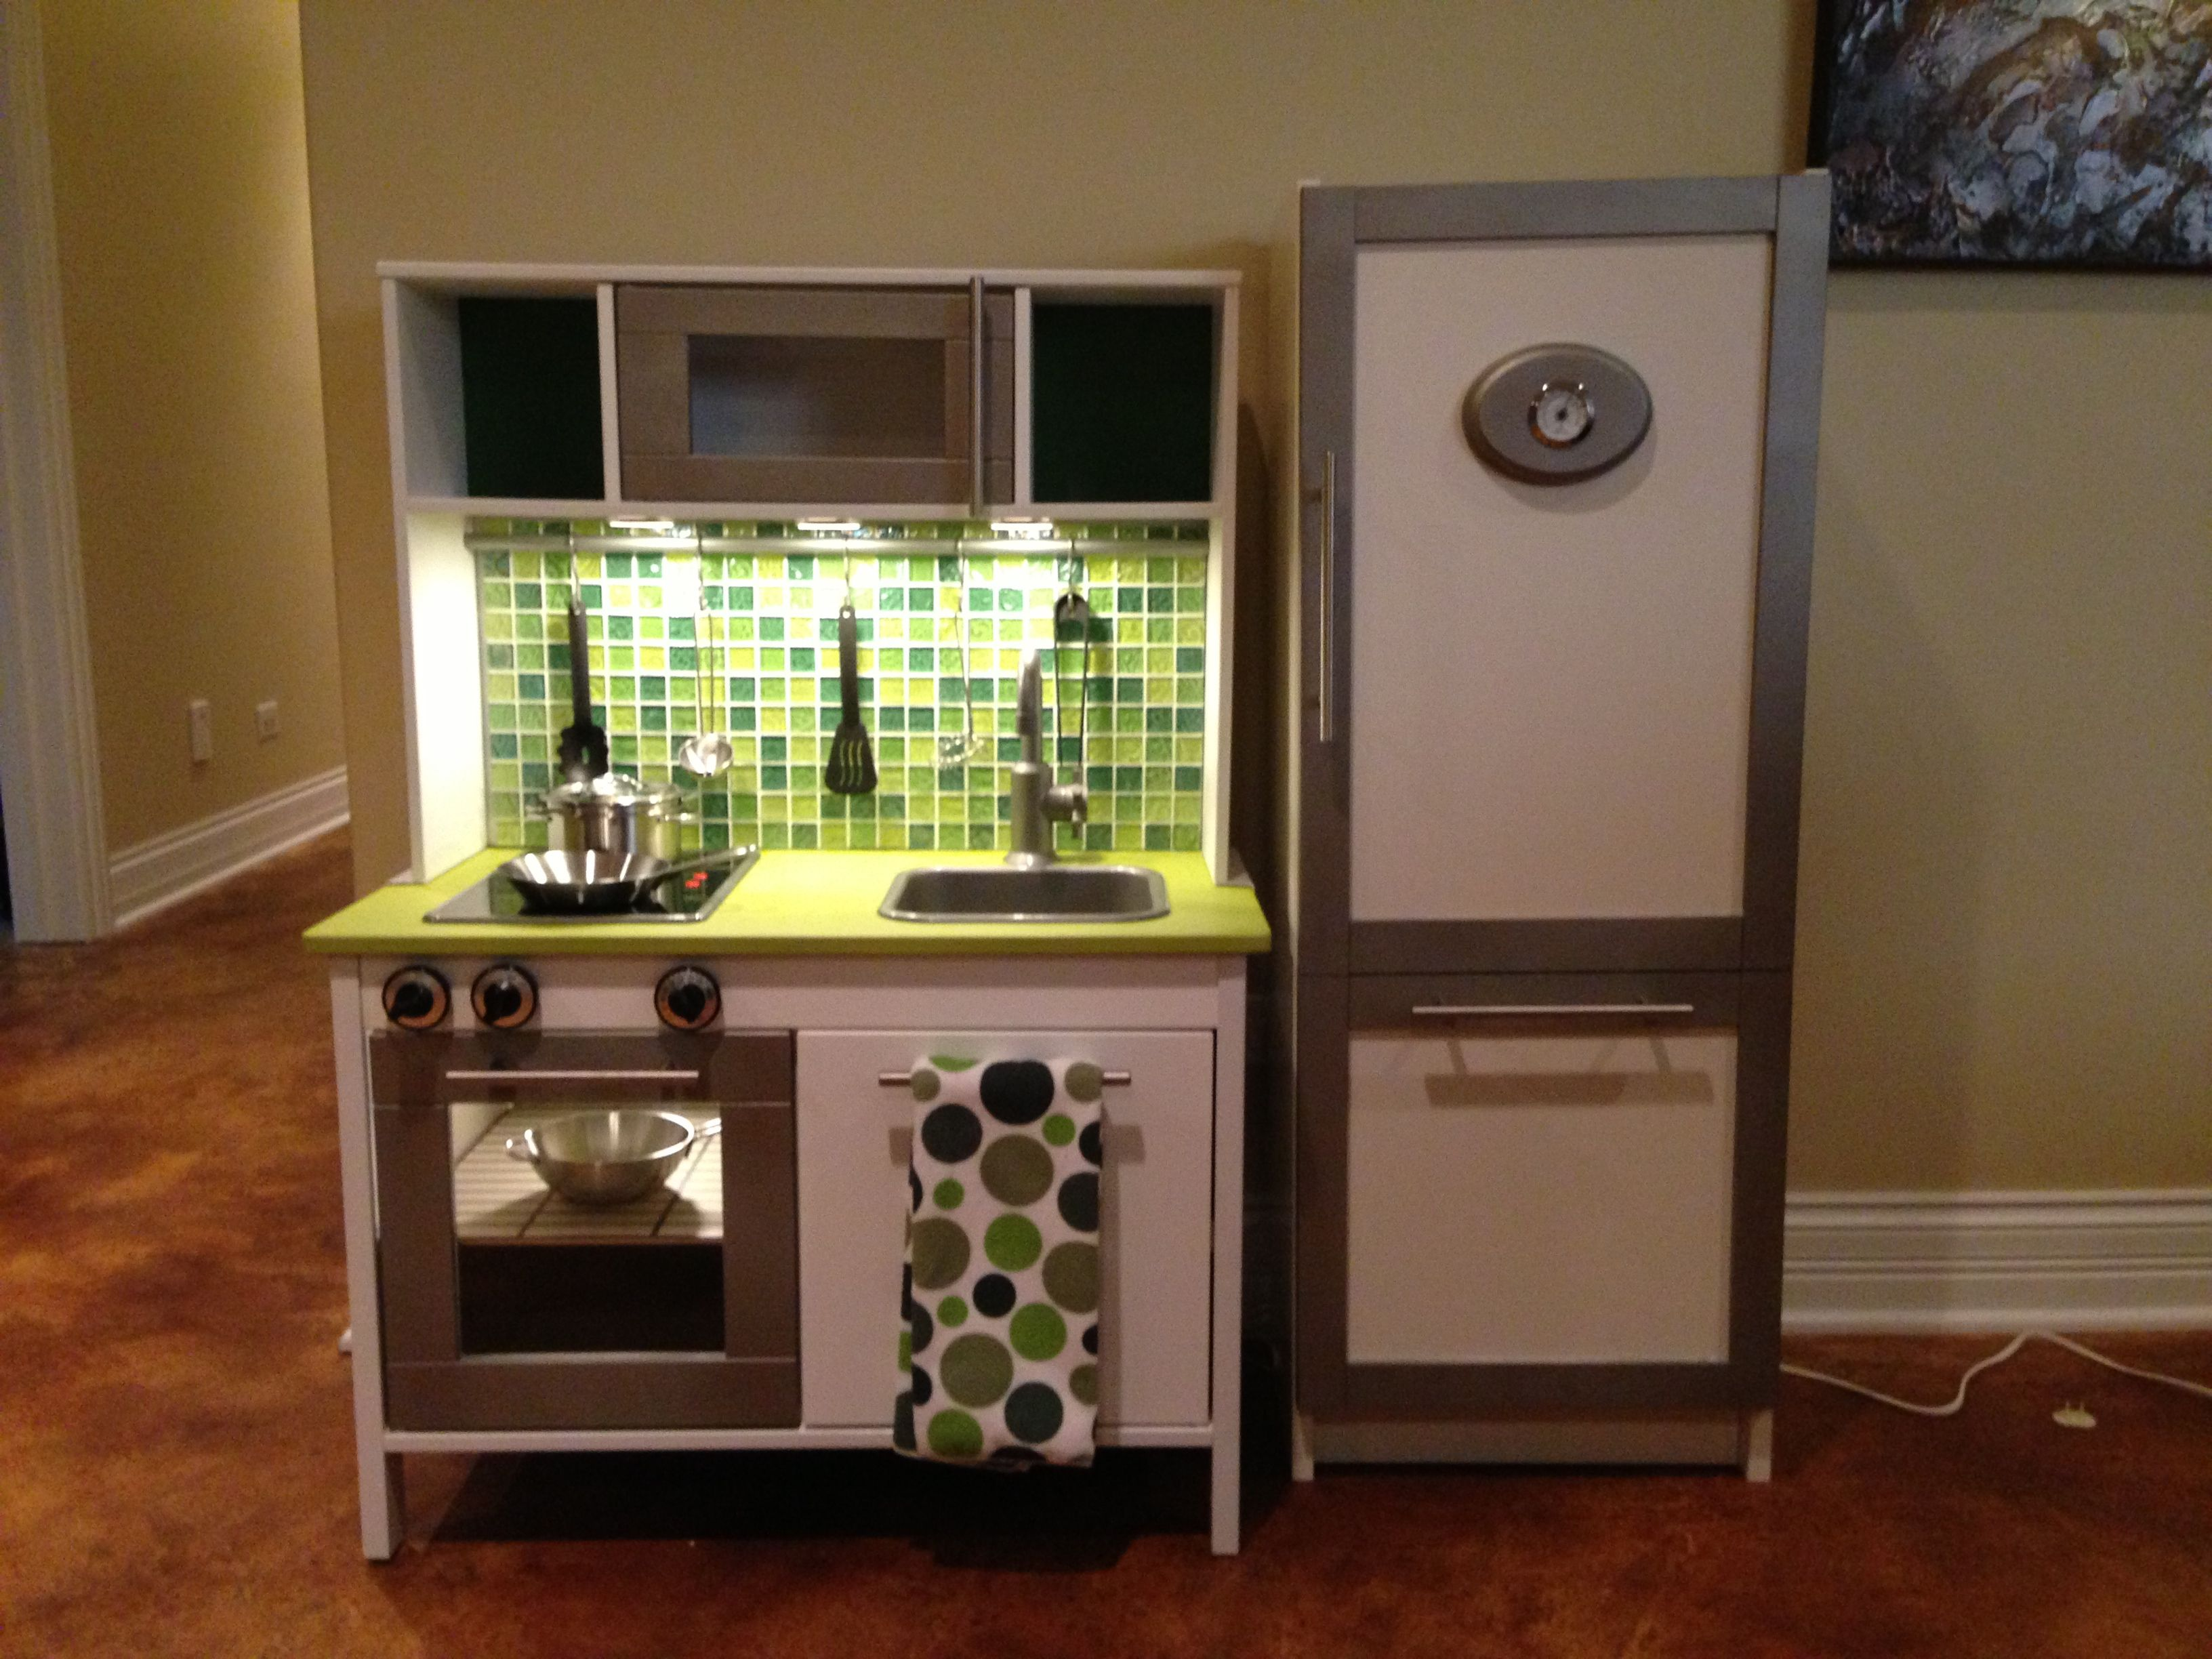 Ikea duktig mini kitchen makeover added paint tile - Mini cuisine ikea ...